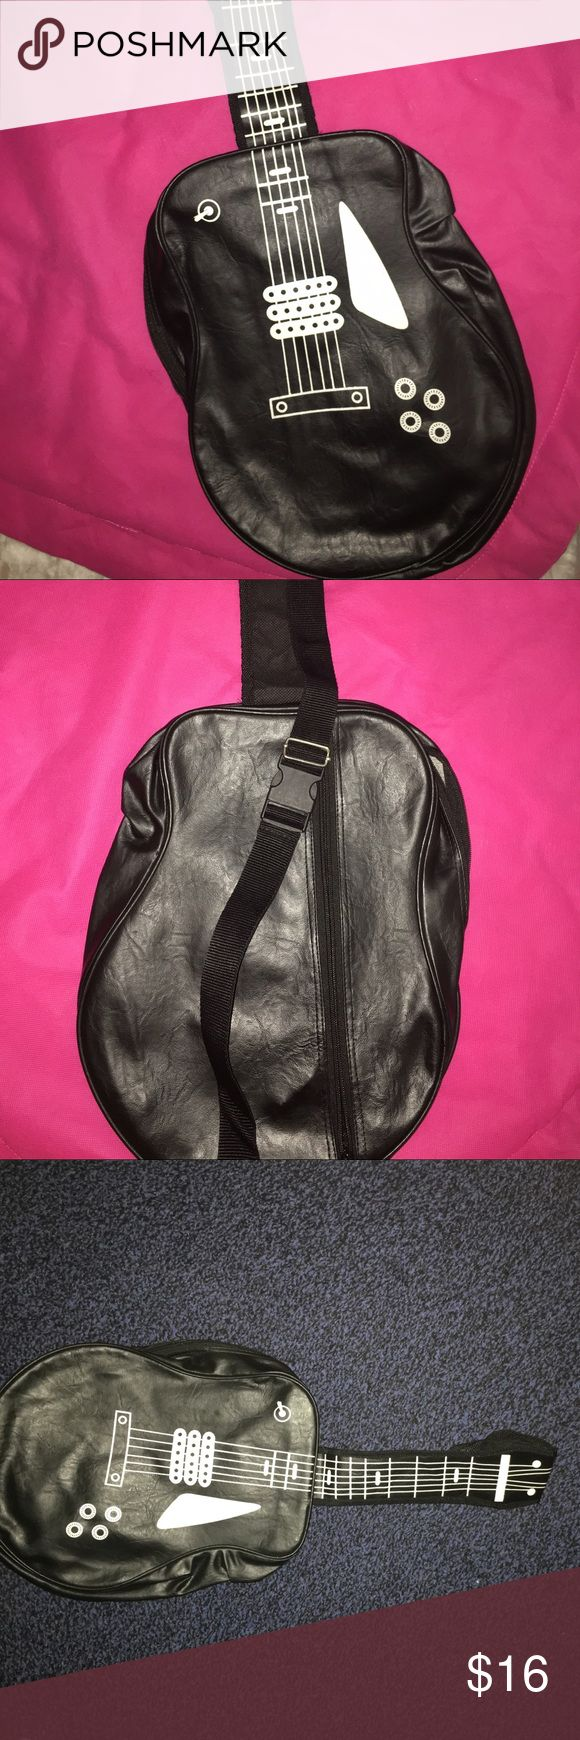 🎸🎸Guitar Cross Body Bag🎸🎸 Good condition, no stains inside the bag but there are white flakes on the outside of the bag-refer to the last photo. The bag is pretty roomy and fits my 10 inch tablet with more room to spare. The strap is adjustable. Sling this cool bag over your shoulder or wear it as a crossbody!! Offers are welcomed!!! Bags Crossbody Bags